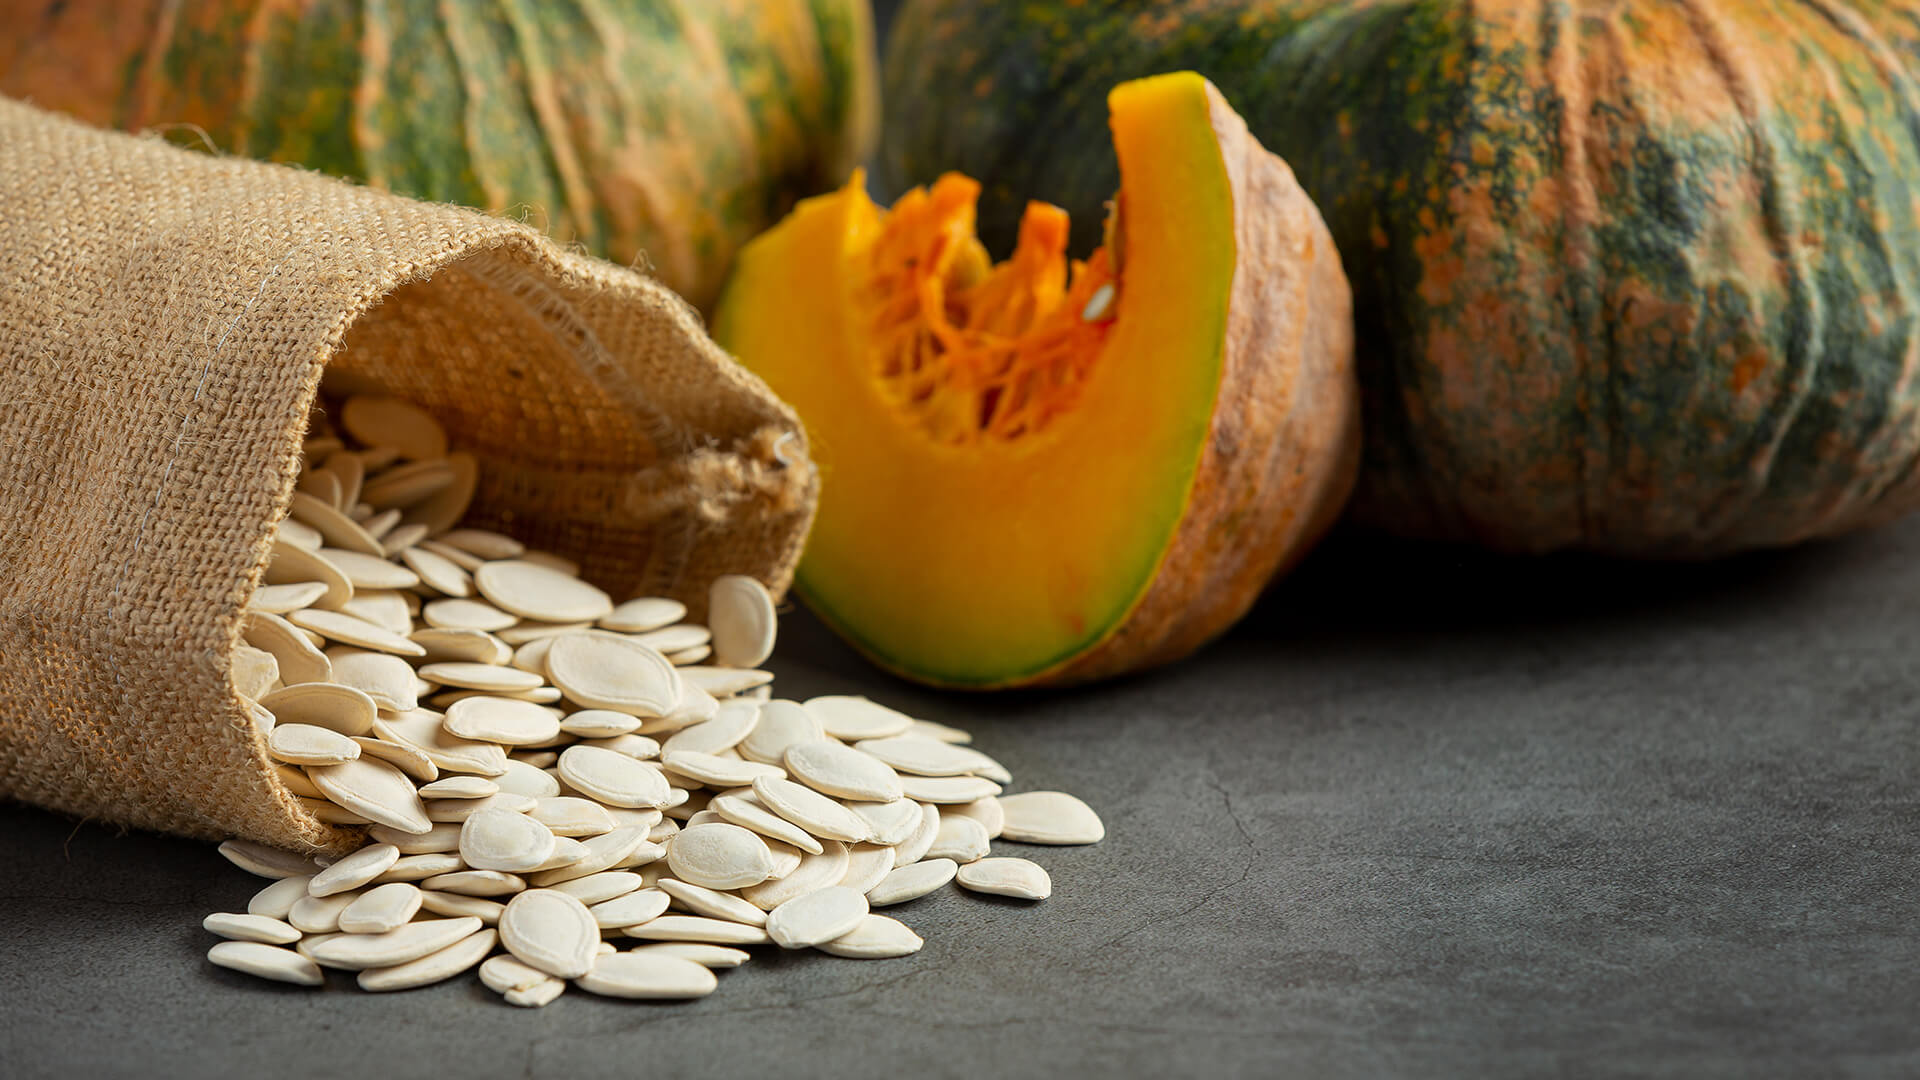 Benefits of Pumpkin seeds for women with PCOS